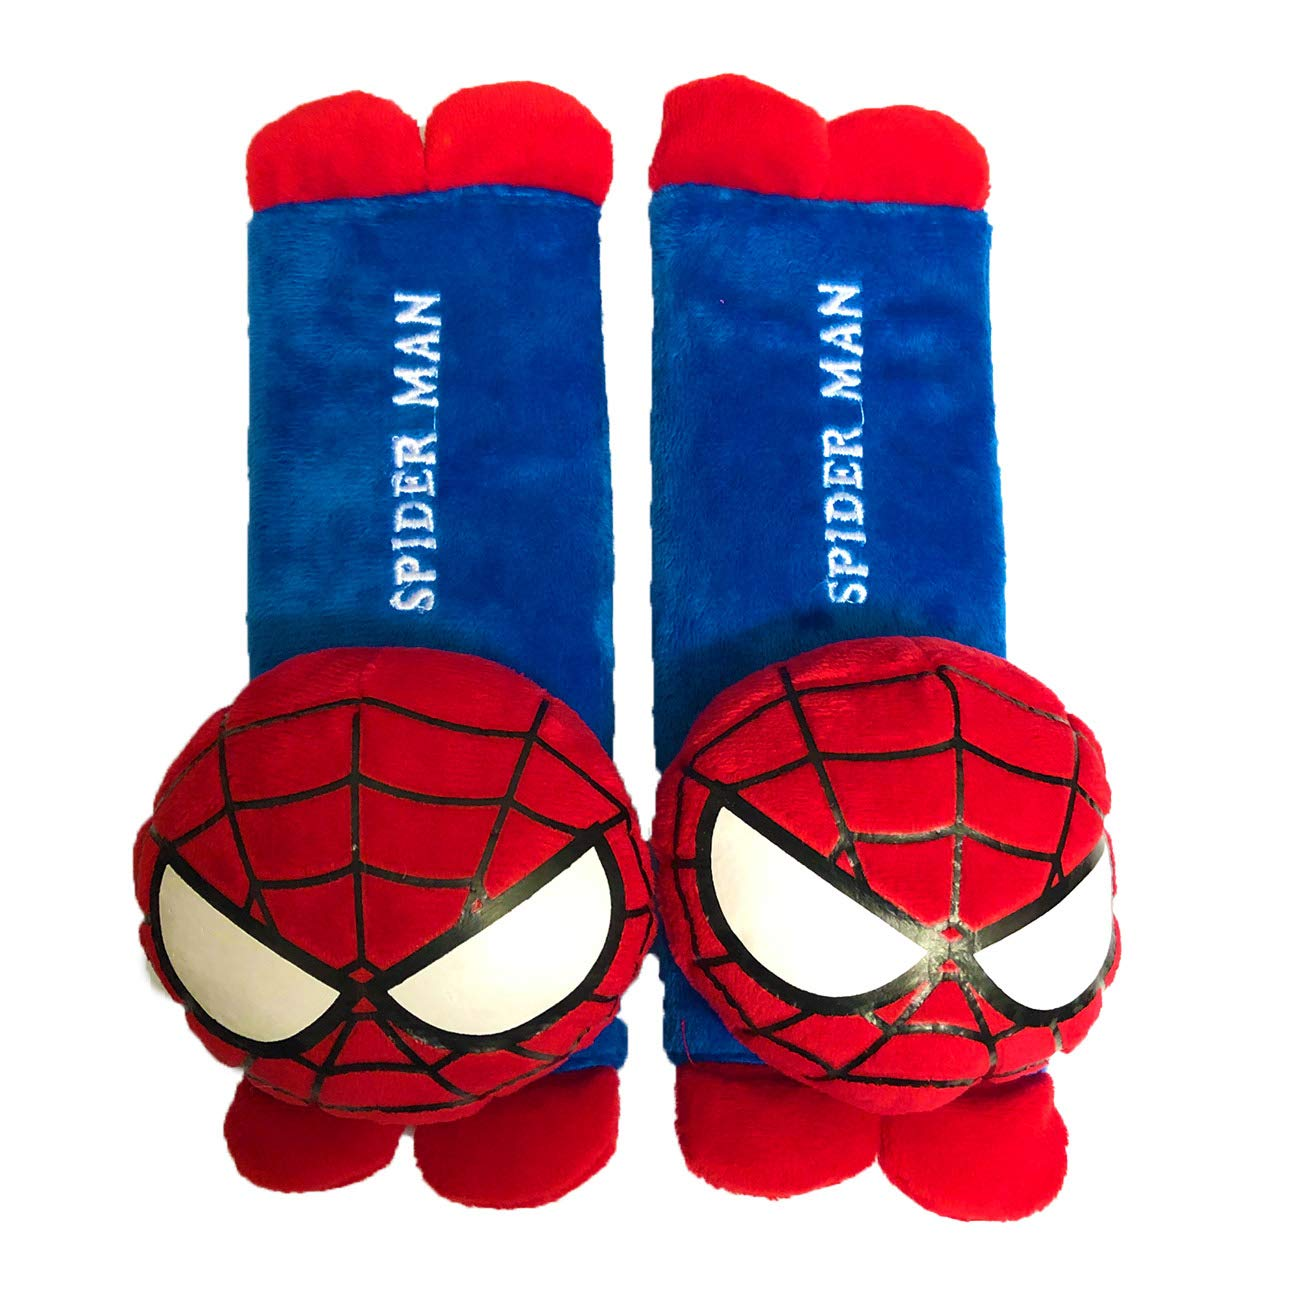 Car Seat Strap Belt Covers for Kids, 2 Pack Cute Cartoon Automative Vehicle Car Safety Seatbelt Cover, Soft Plush Shoulder Neck Comfort Padded Seat Belt Protector, Gift for Christmas Spider Man by MuTouNiao